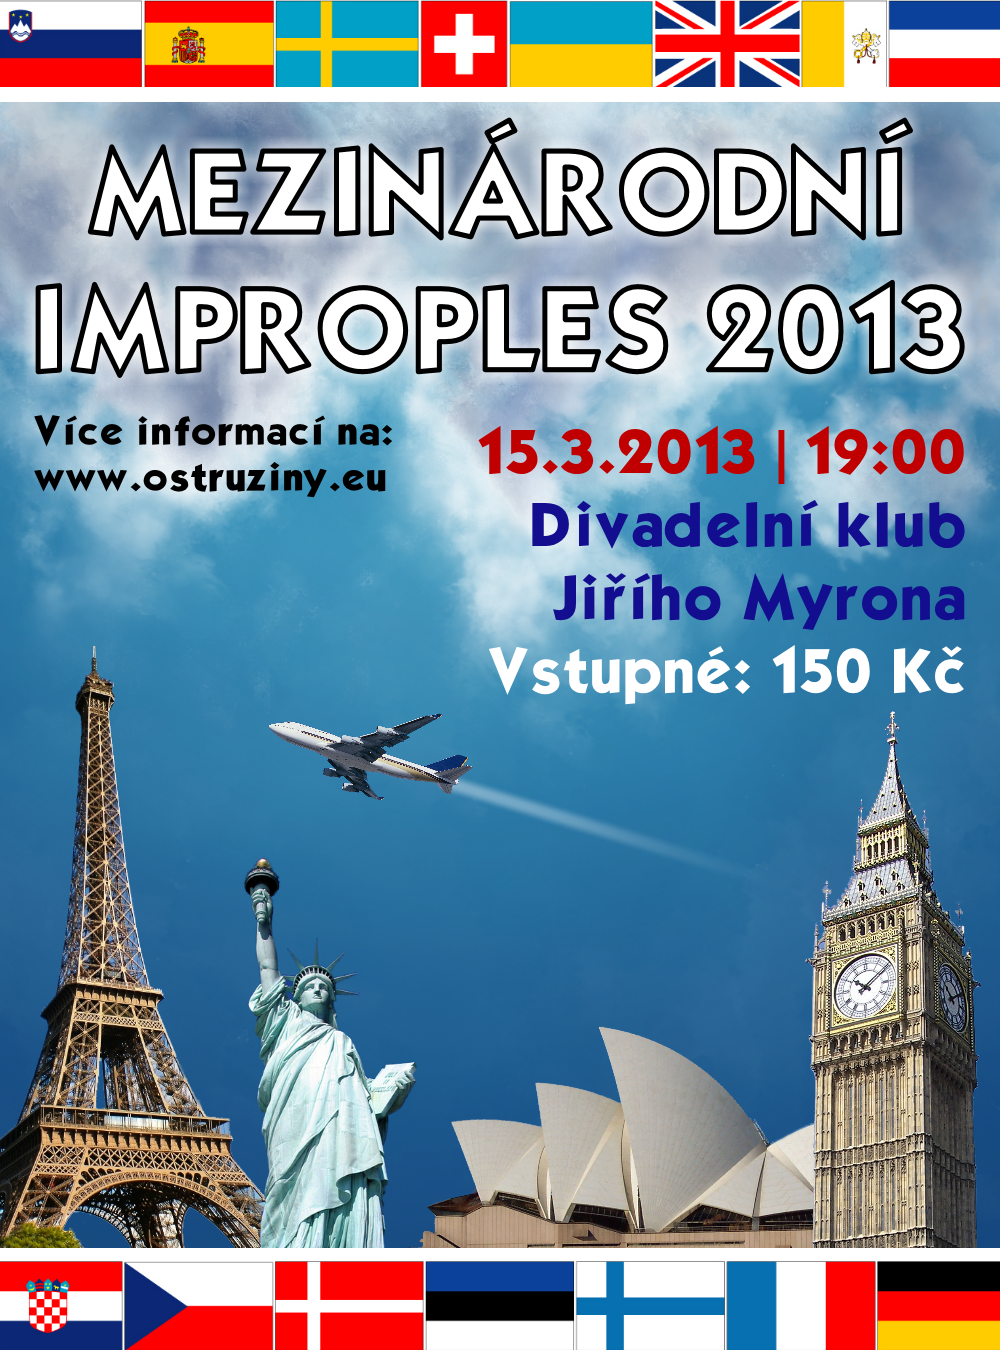 IMPROPLES 2013